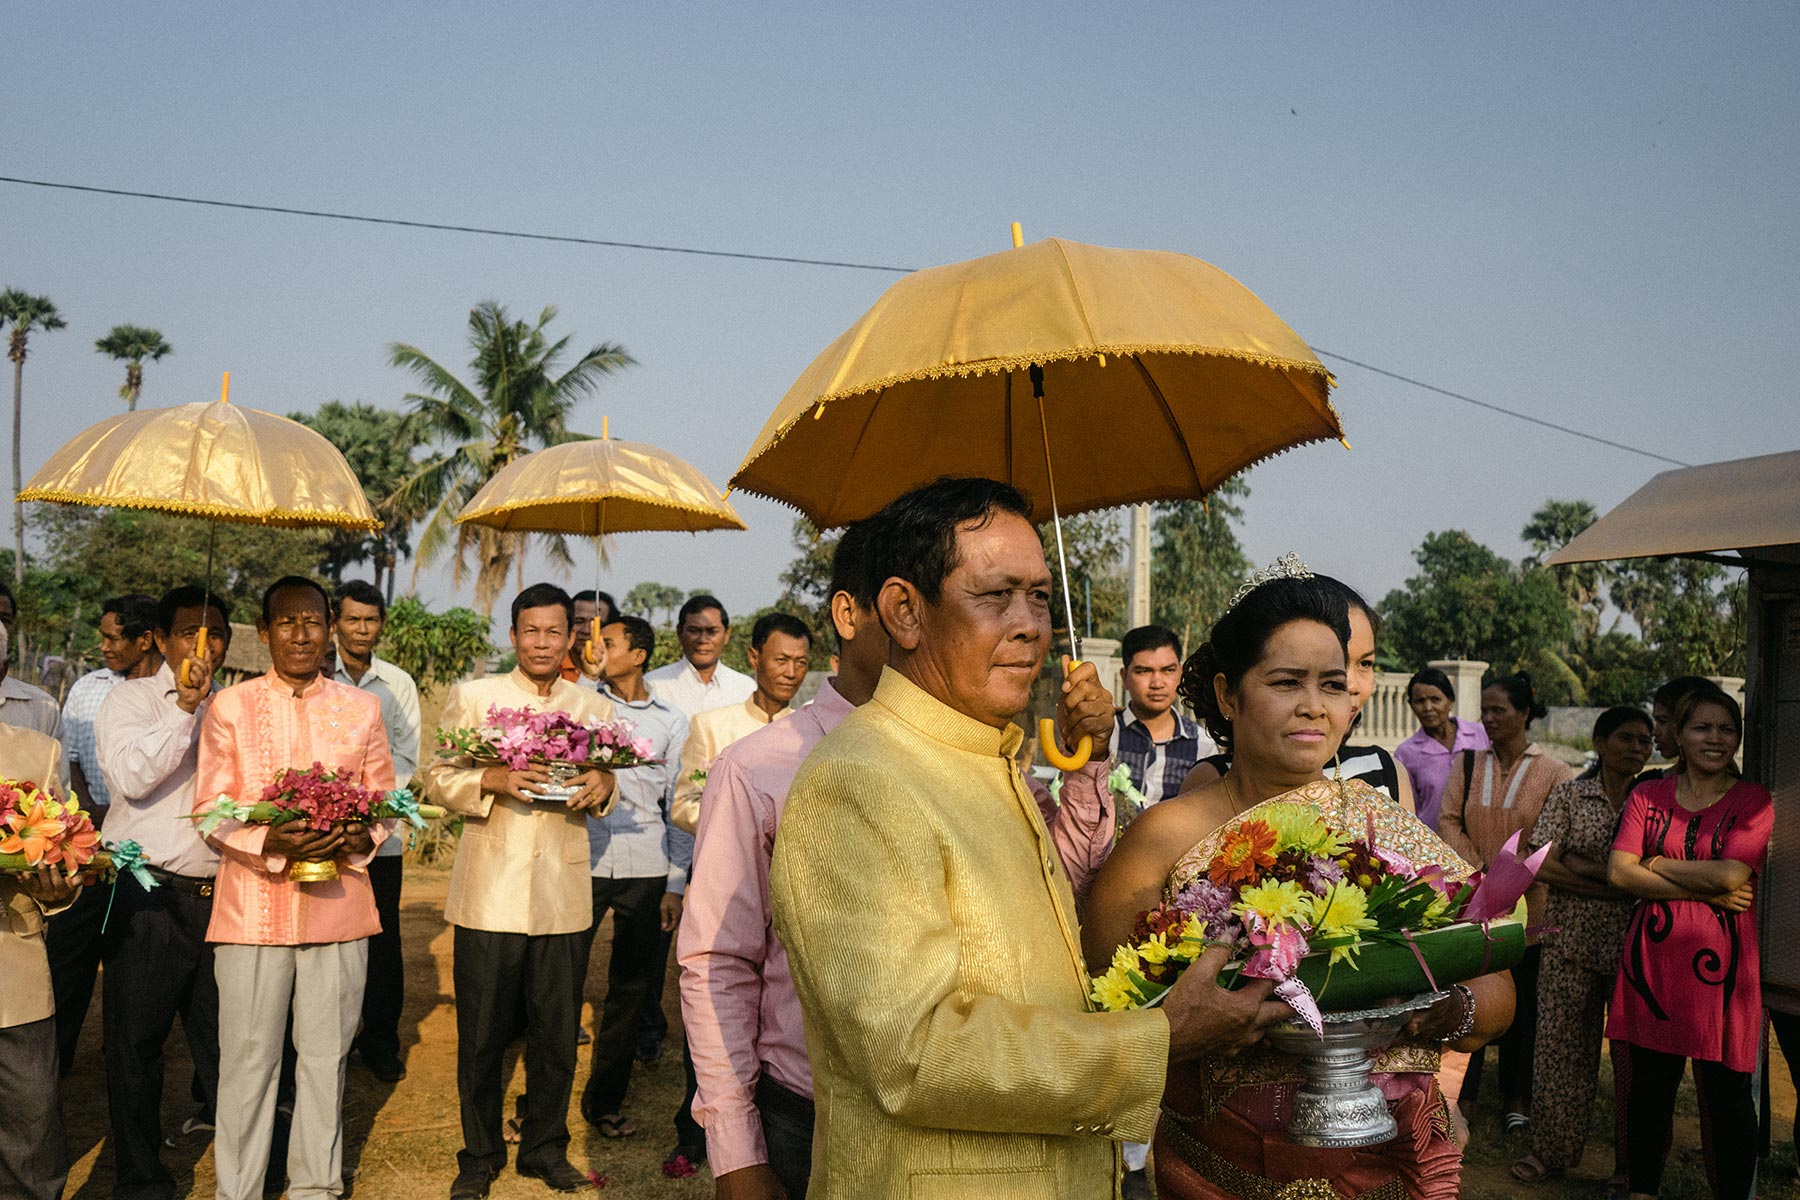 Yim Ran (right) and Sok Hort join in the fruit parade that traditionally accompanies a Cambodian wedding.